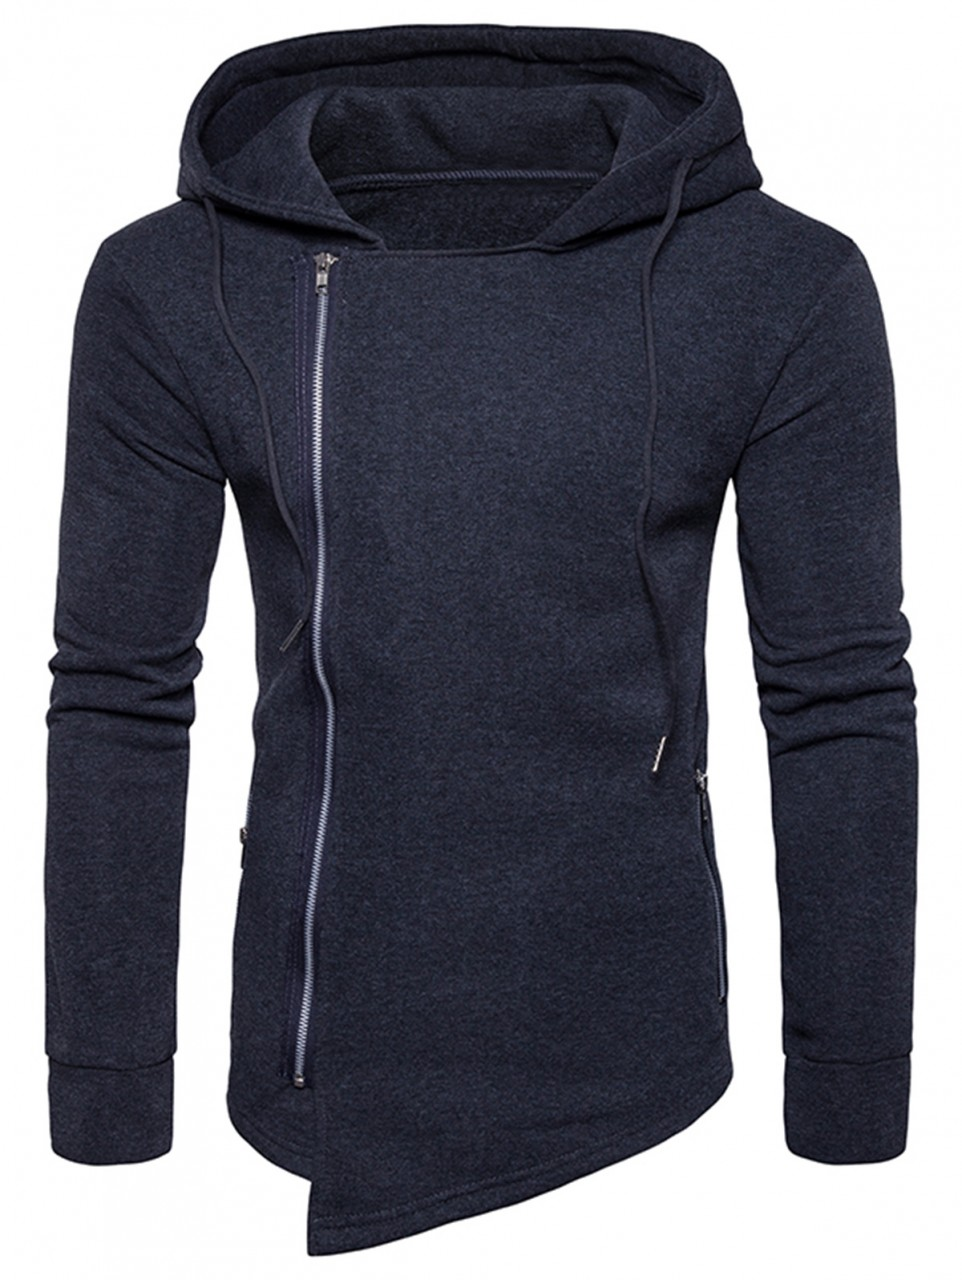 8620a51ee374a6 Hooded Drawstring Asymmetric Zip Up Hoodie BLACK 2XL   Kilimall Kenya